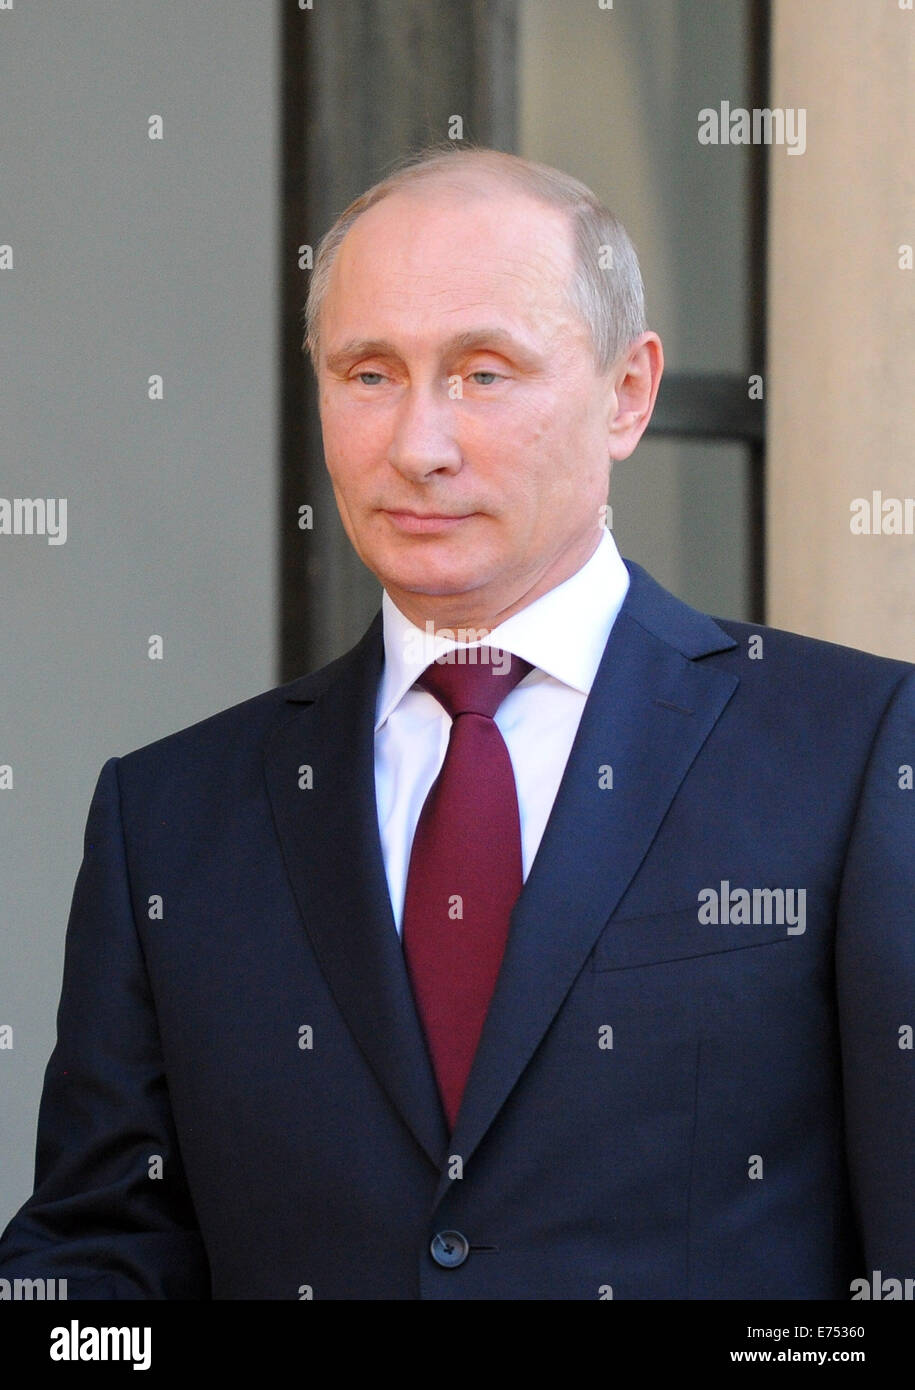 Portrait of Russian President Vladimir Putin, pictured during his official visit to France for the D-Day 2014 commemorations. - Stock Image